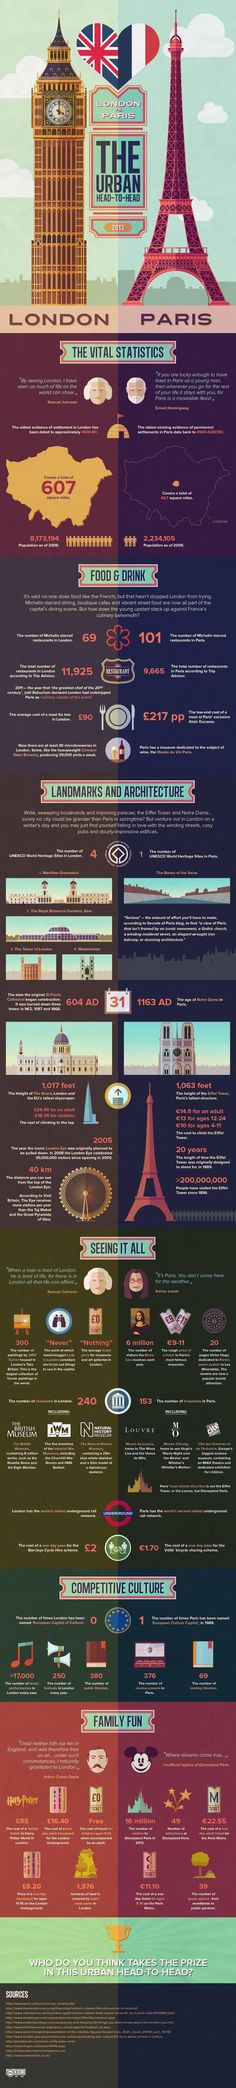 London Vs Paris Infographic - Design - ShortList Magazine